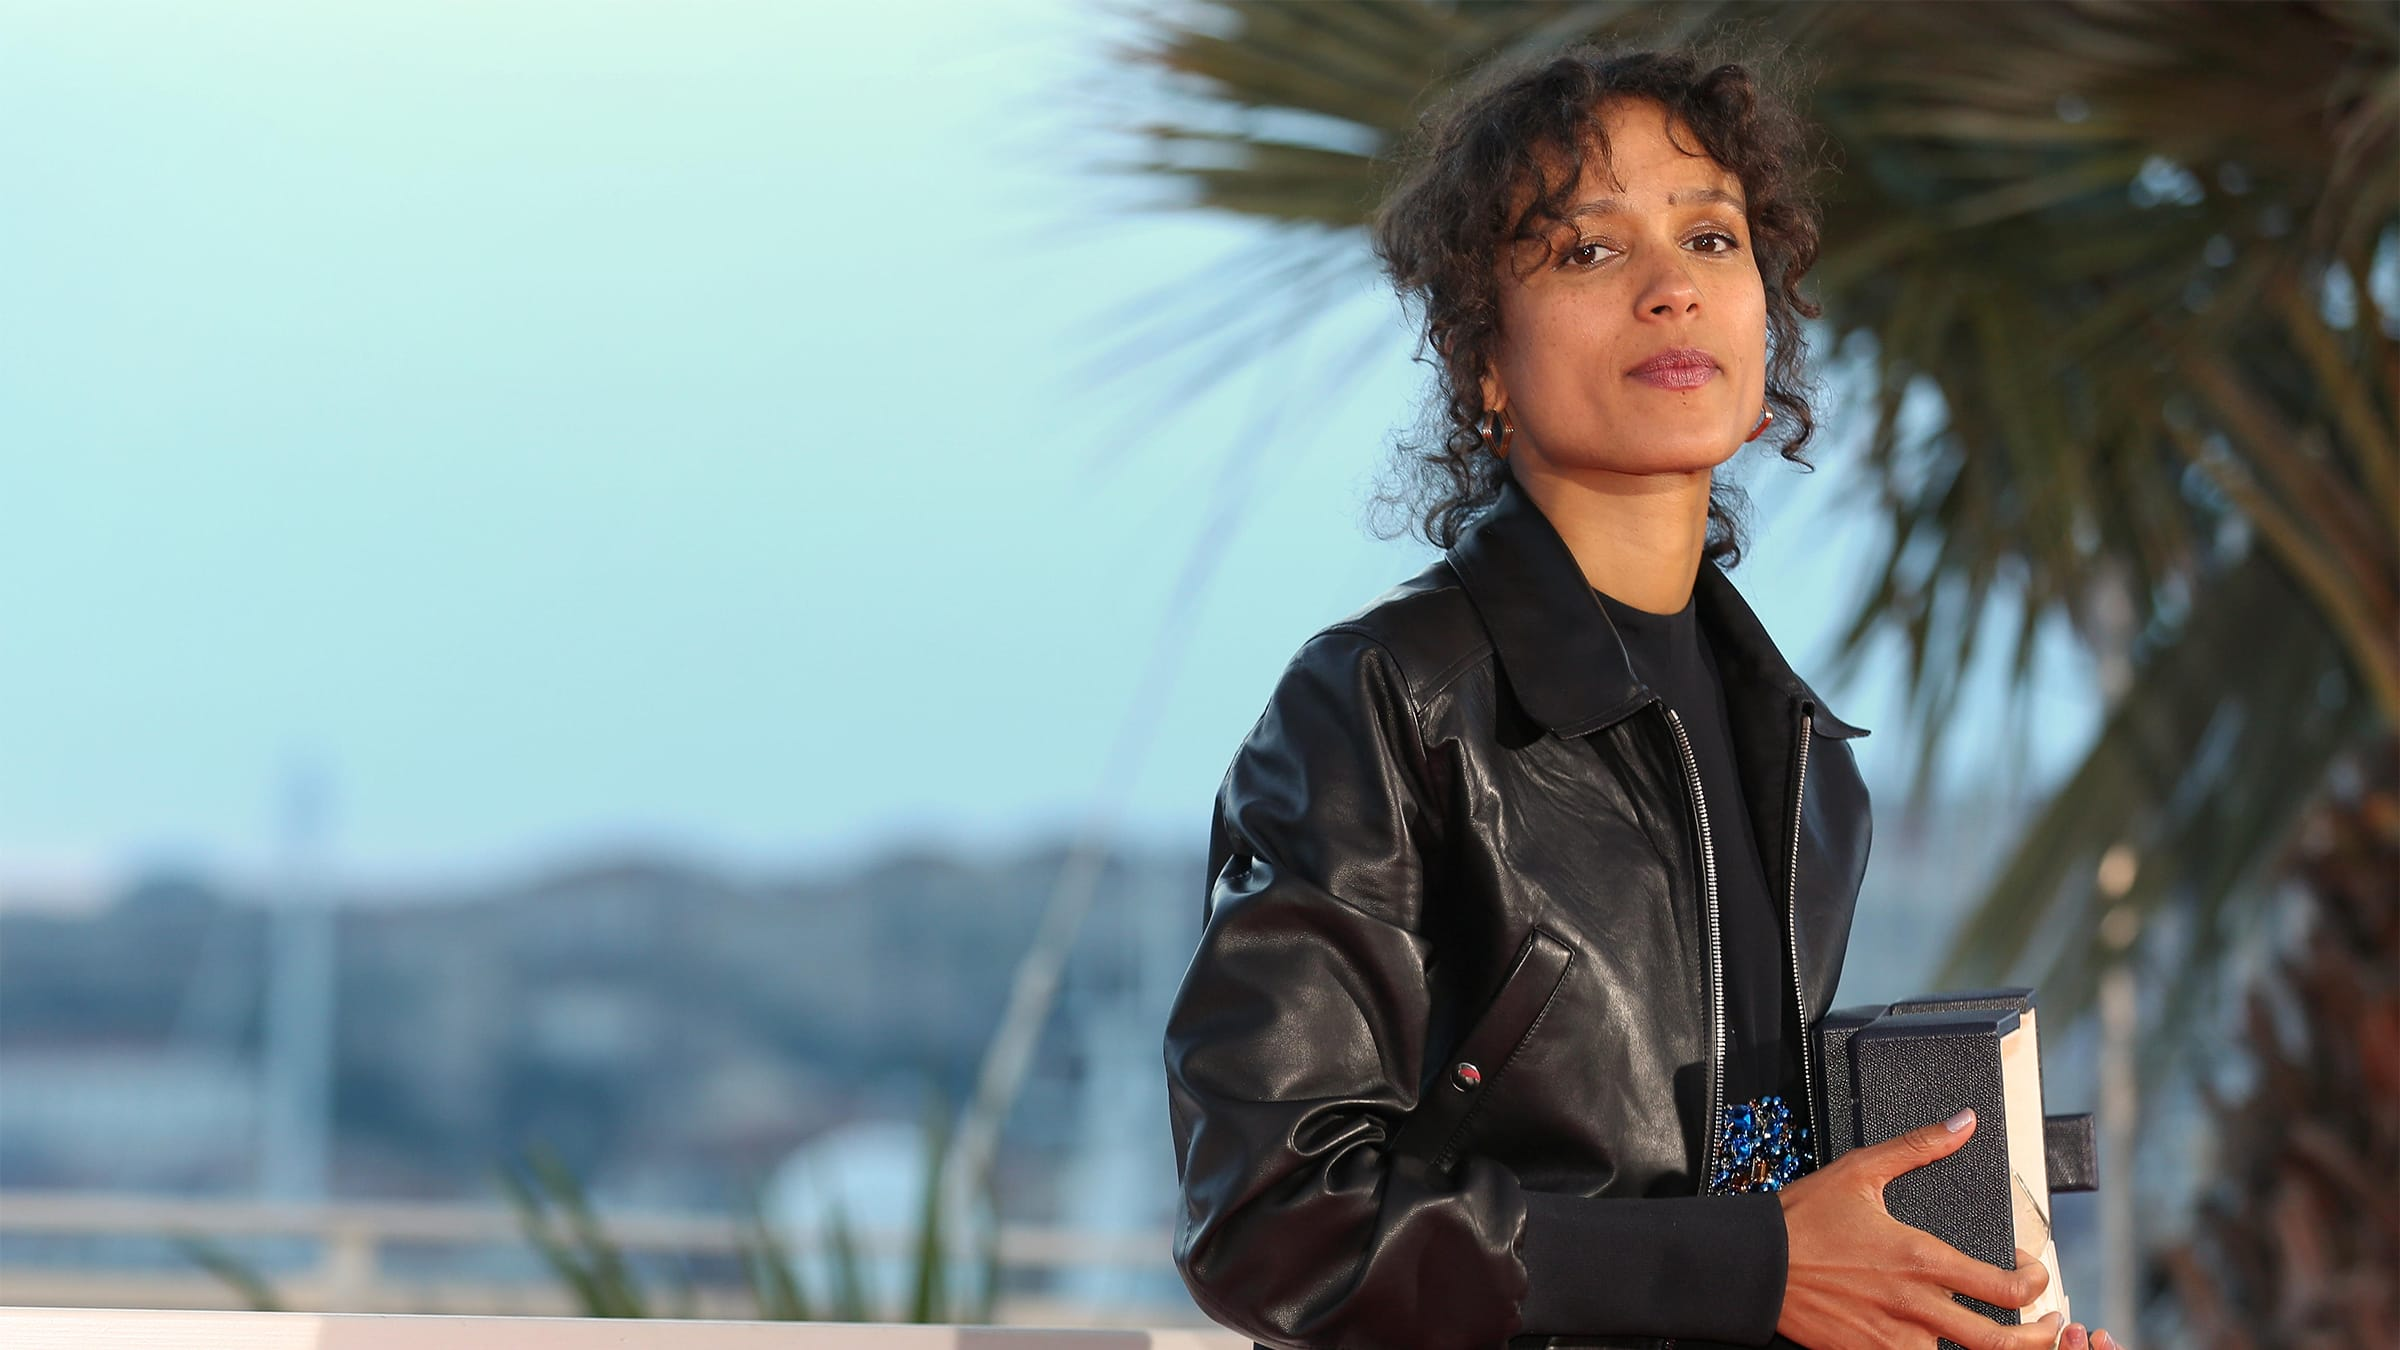 """You Don't Have a Home Until You Leave"": Mati Diop's Short Films"